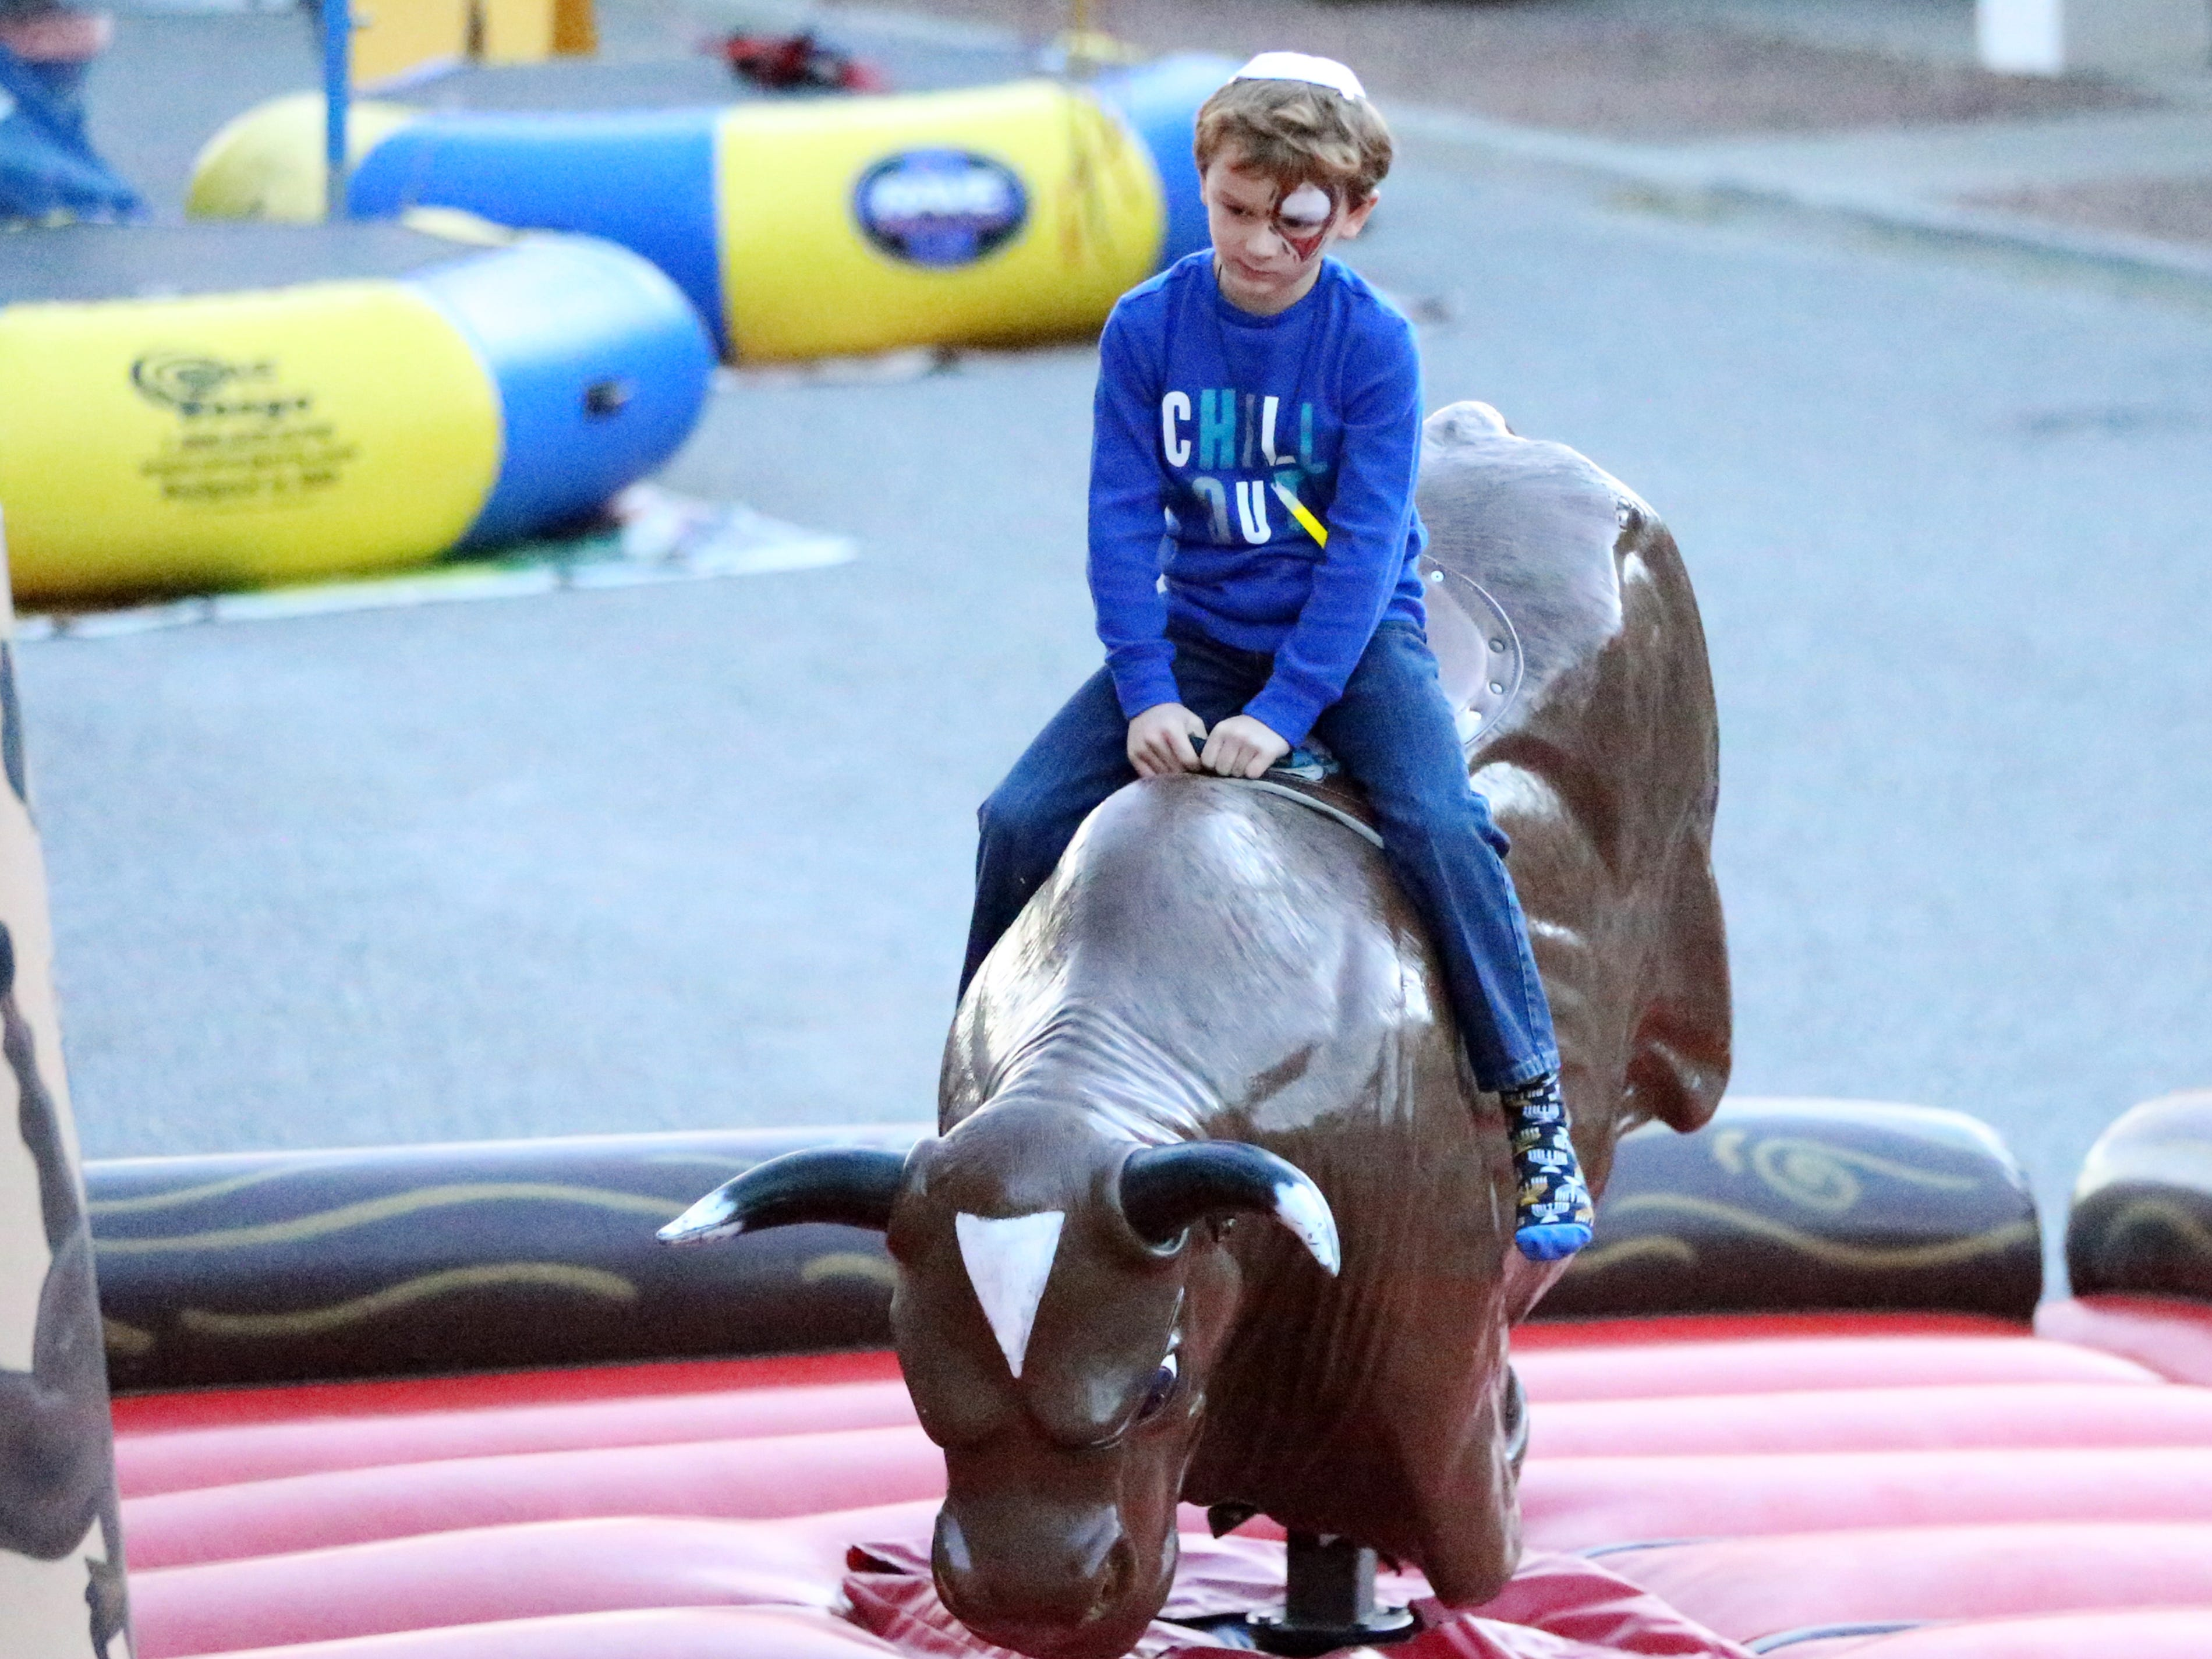 Brodie Kupetz, 6, rides a moving bull attraction Sunday at the Chanukah Playland.